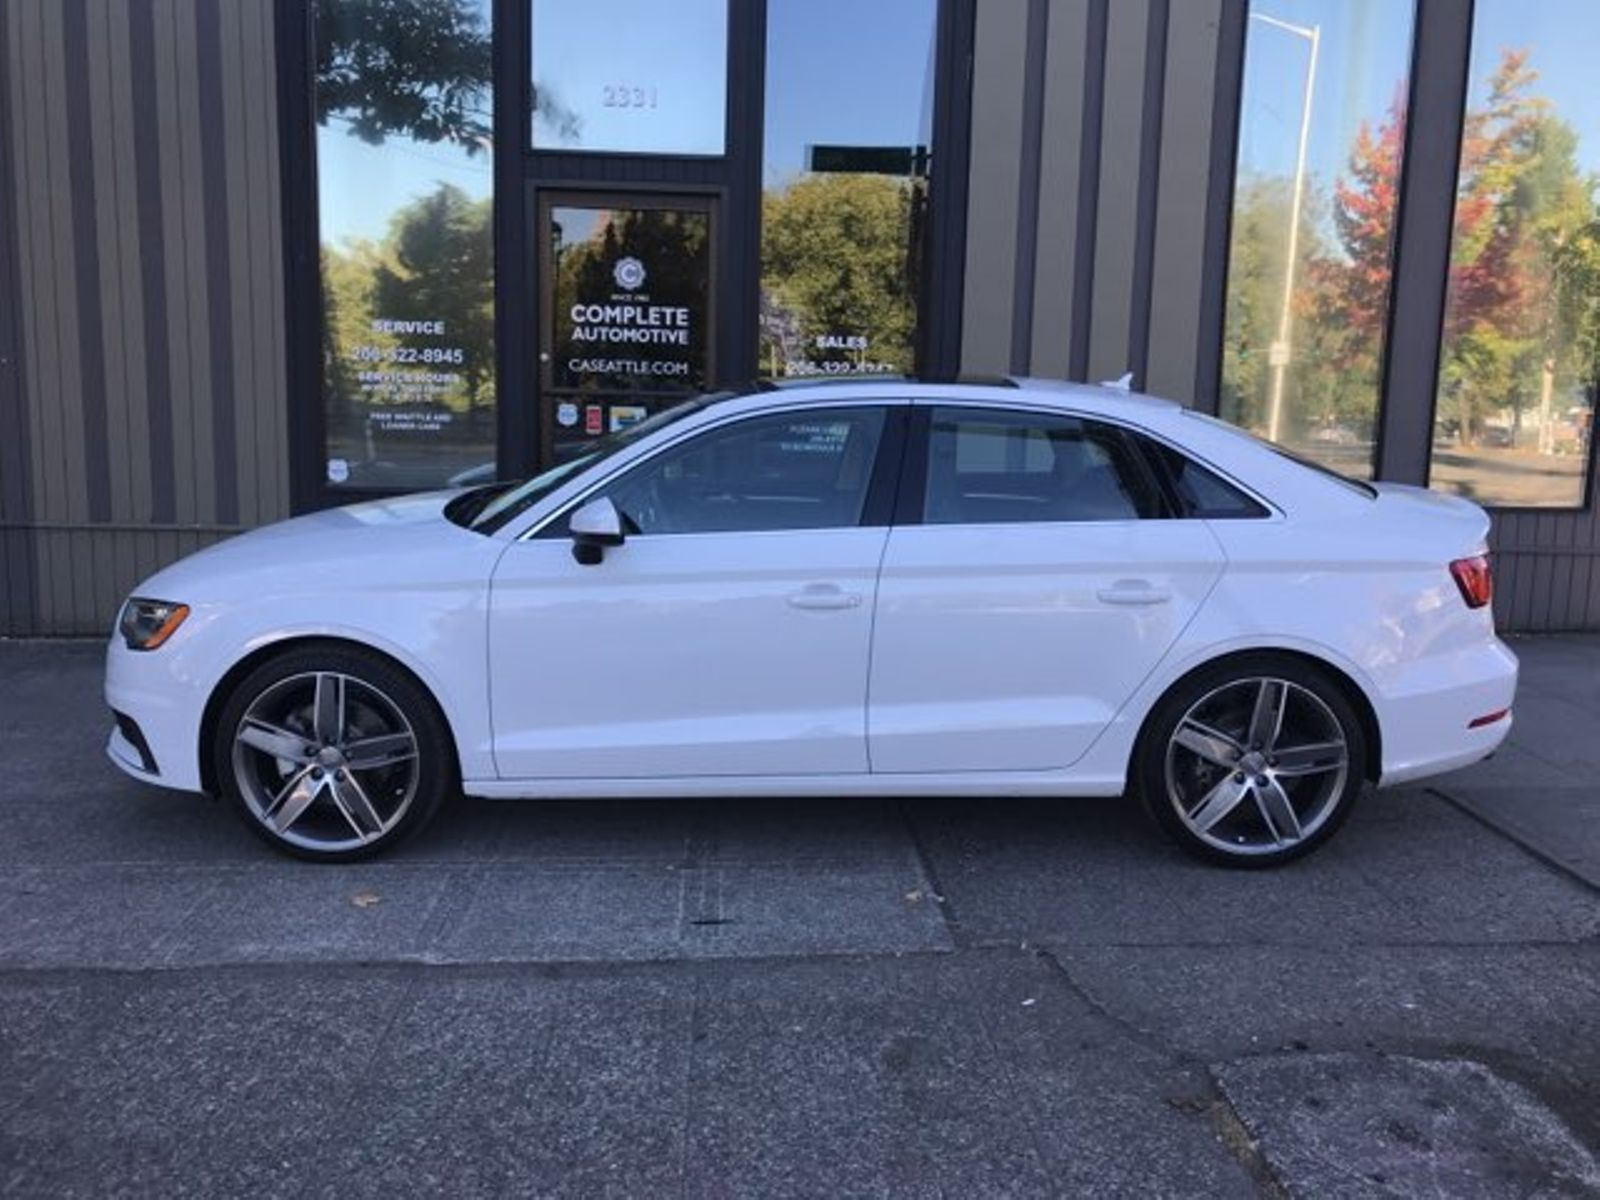 2015 audi a3 20t quattro all wheel drive premium plus sport driver